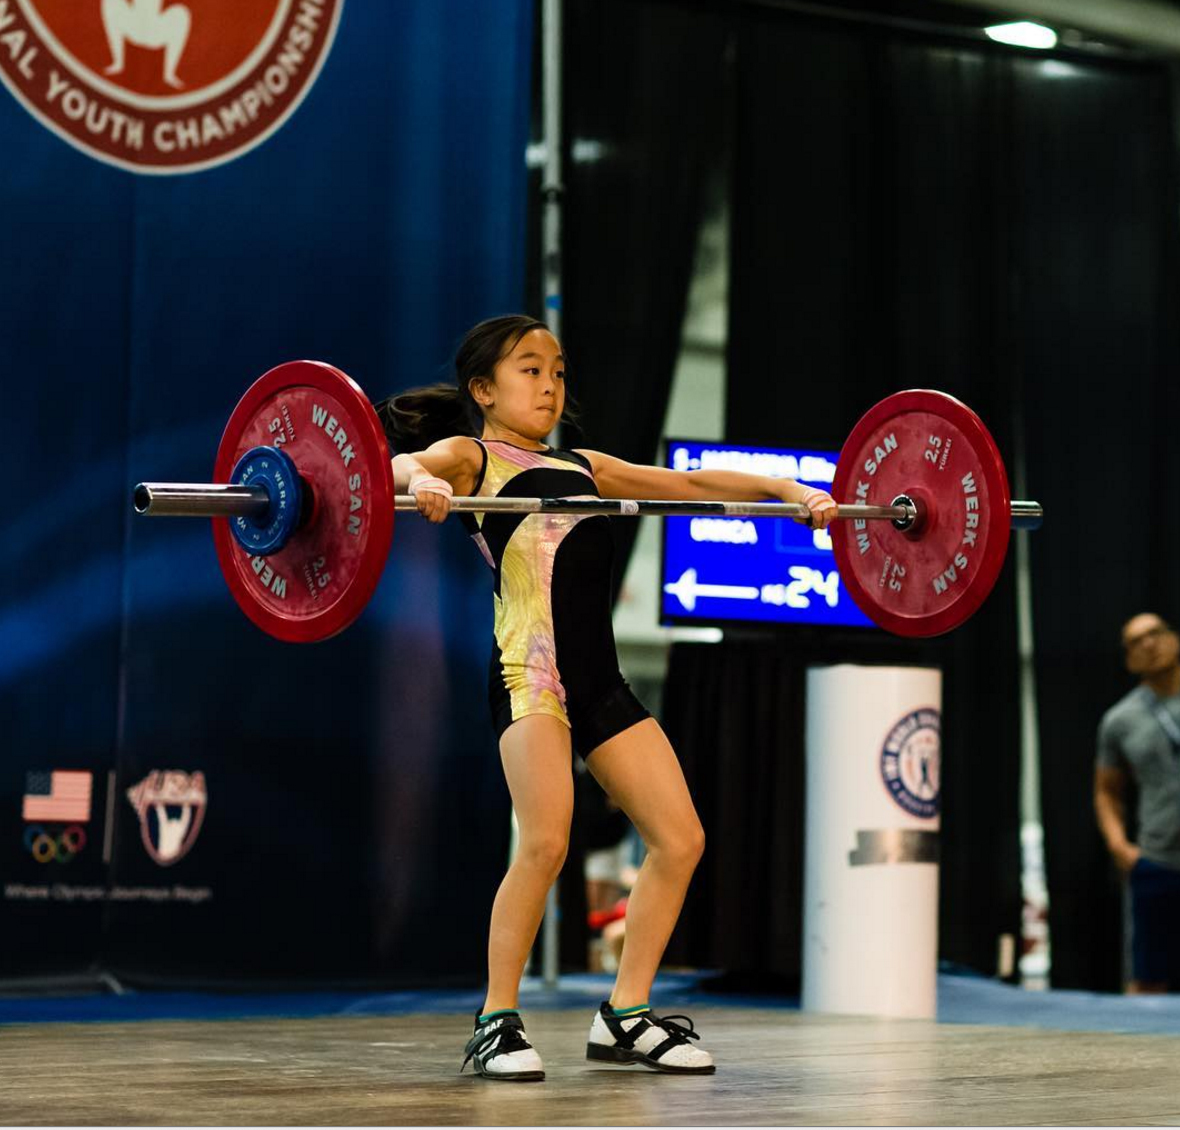 Why Weightlifting Is Good For Kids And Why It Won T Stunt